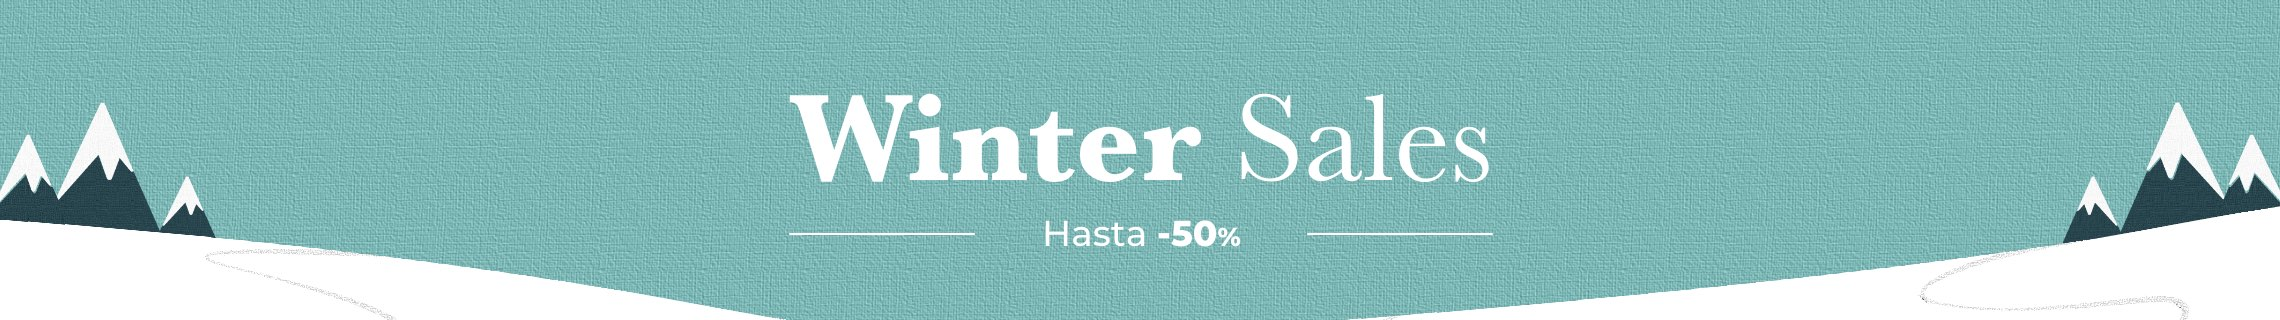 WINTER SALES HASTA -50% EXPIRA EL 31.01